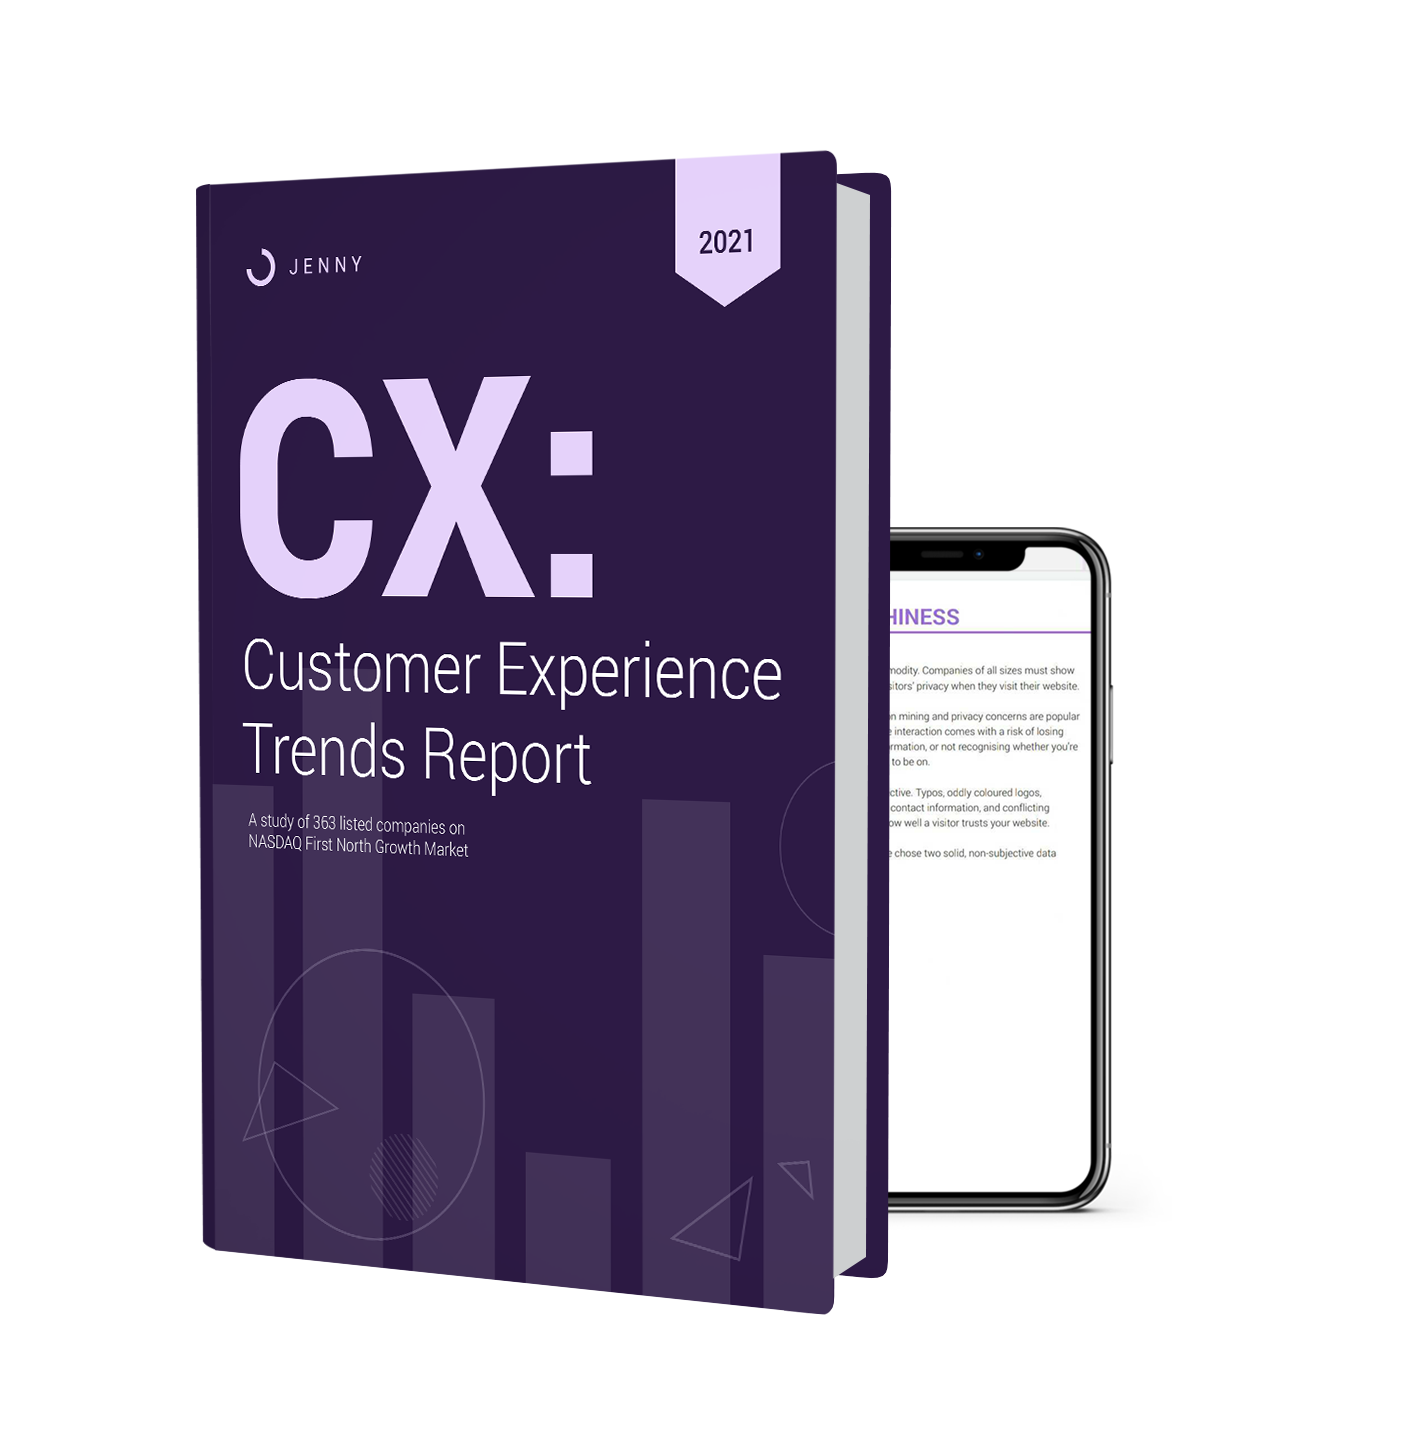 Customer Experience Trends Report for 2021 by GetJenny